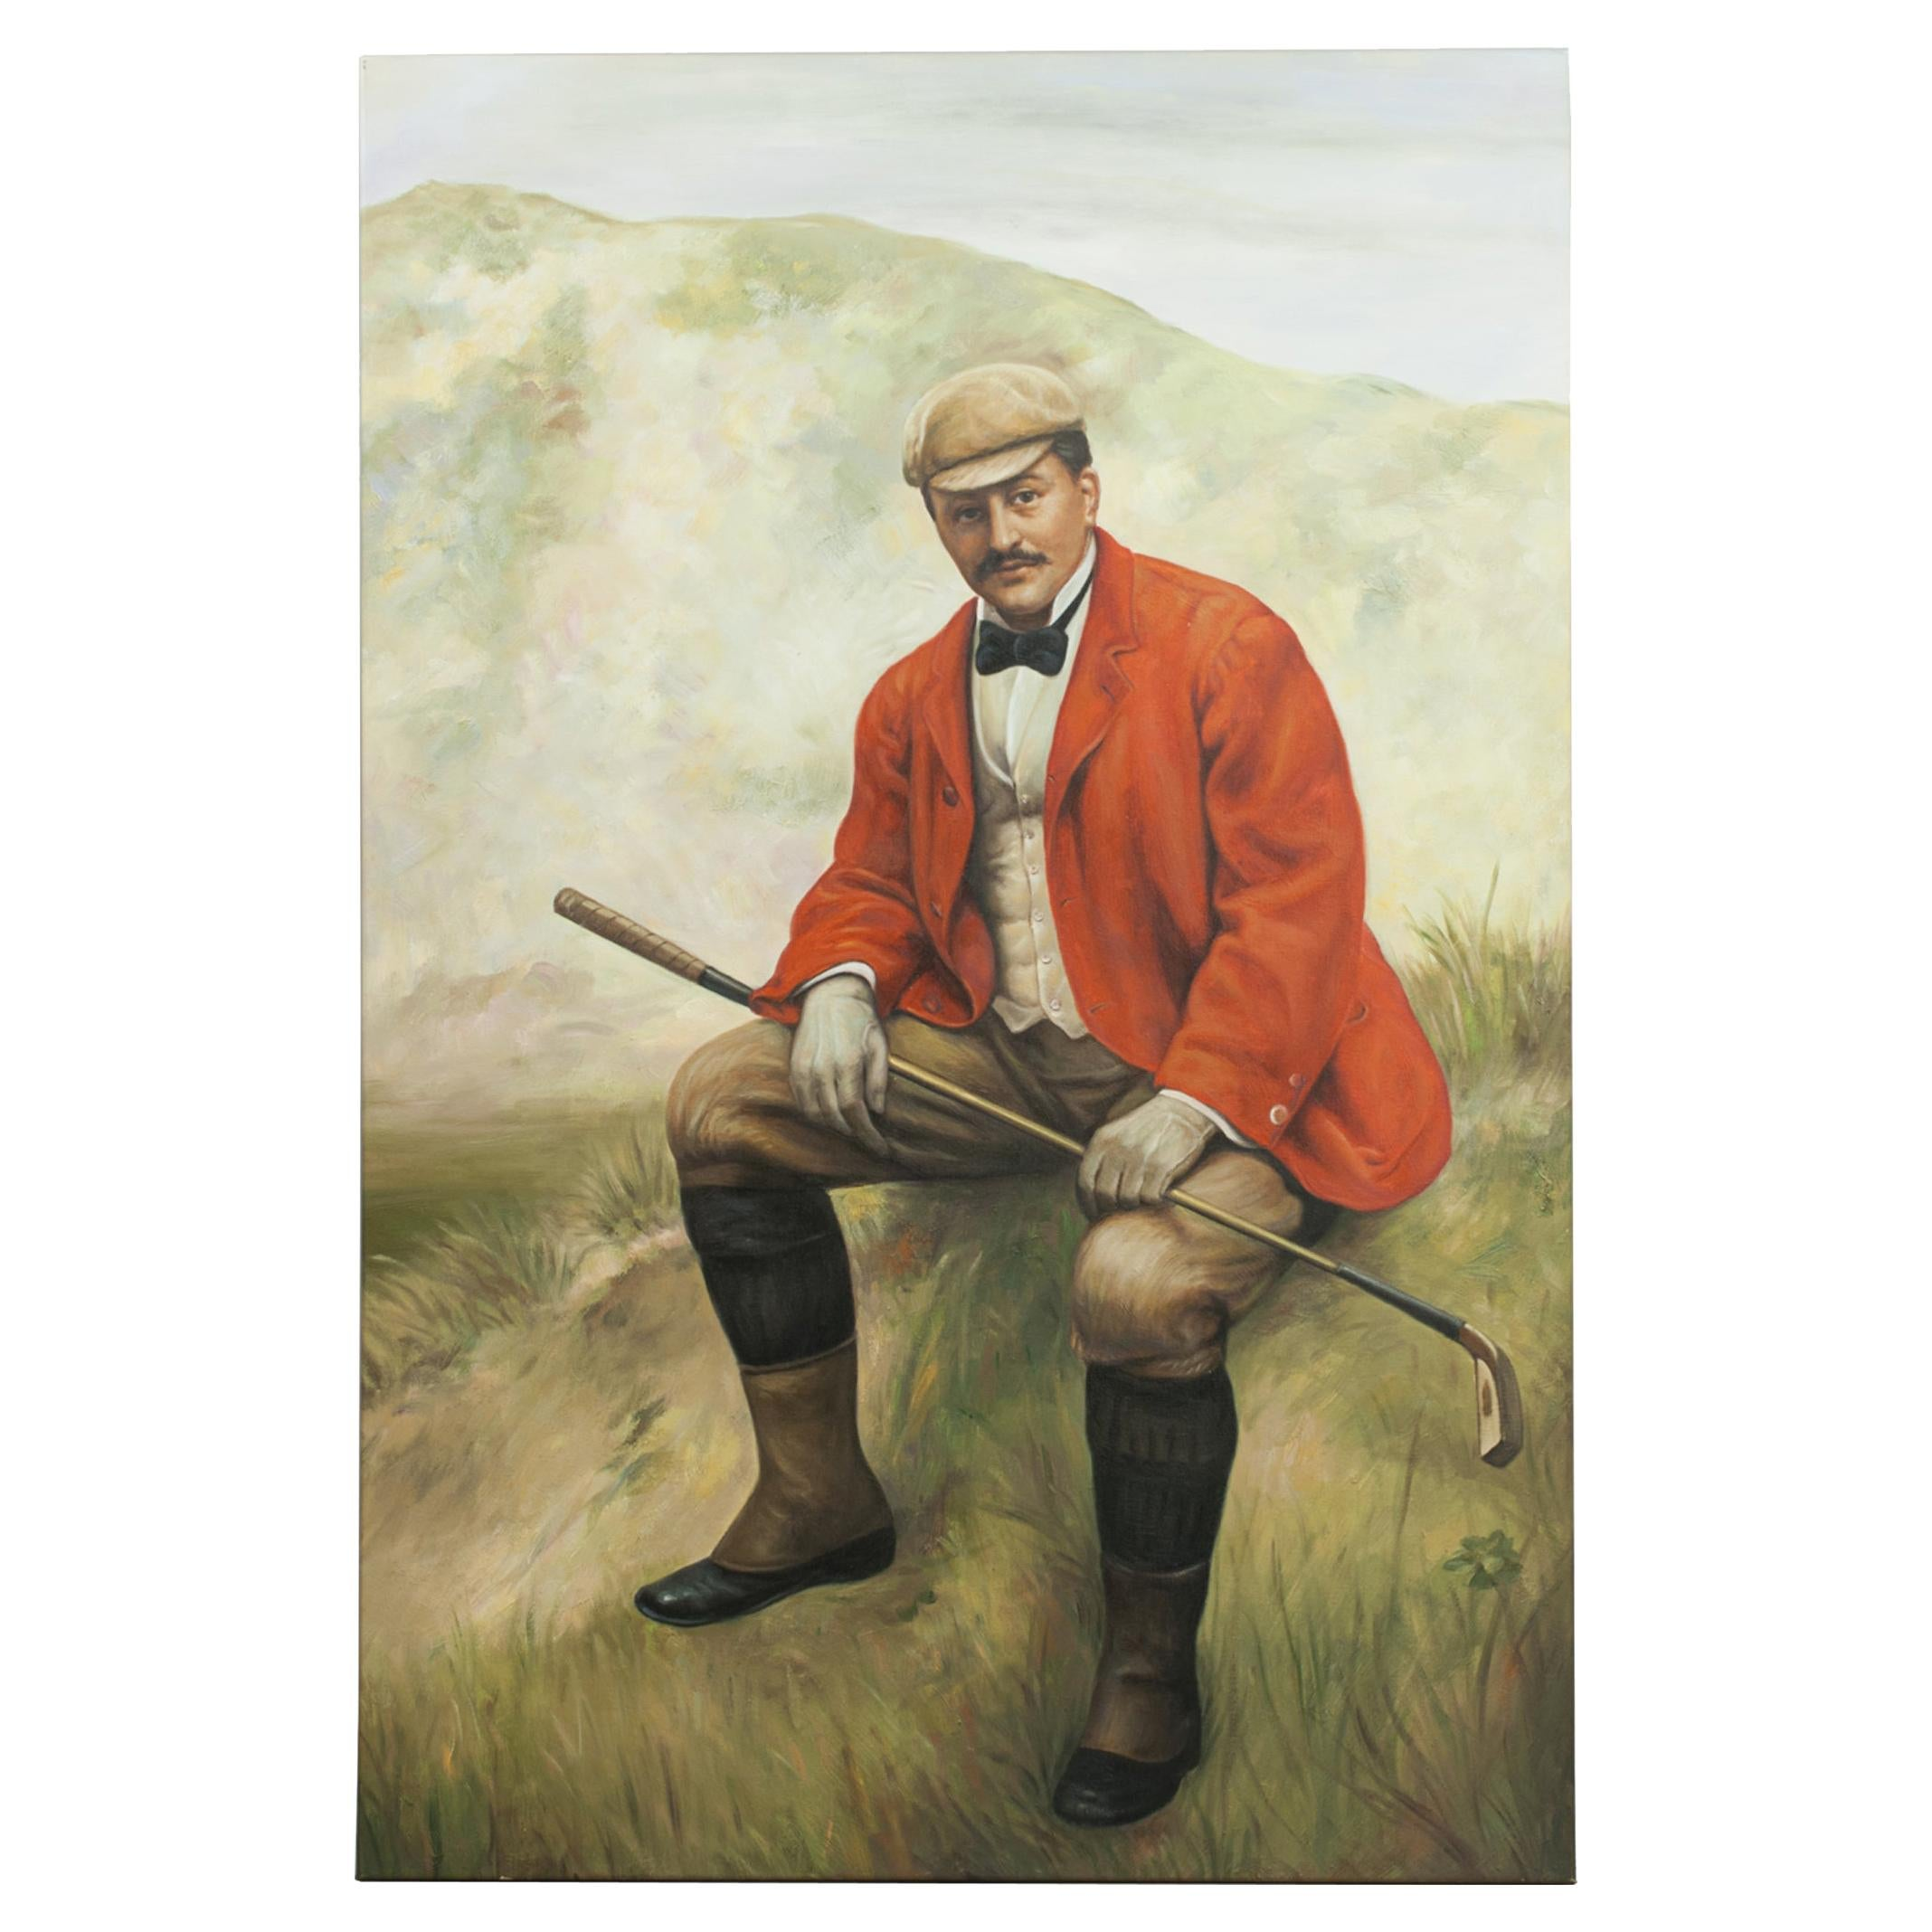 Golf Oil Painting of Dr. William Laidlaw Purves by Hon. John Collier